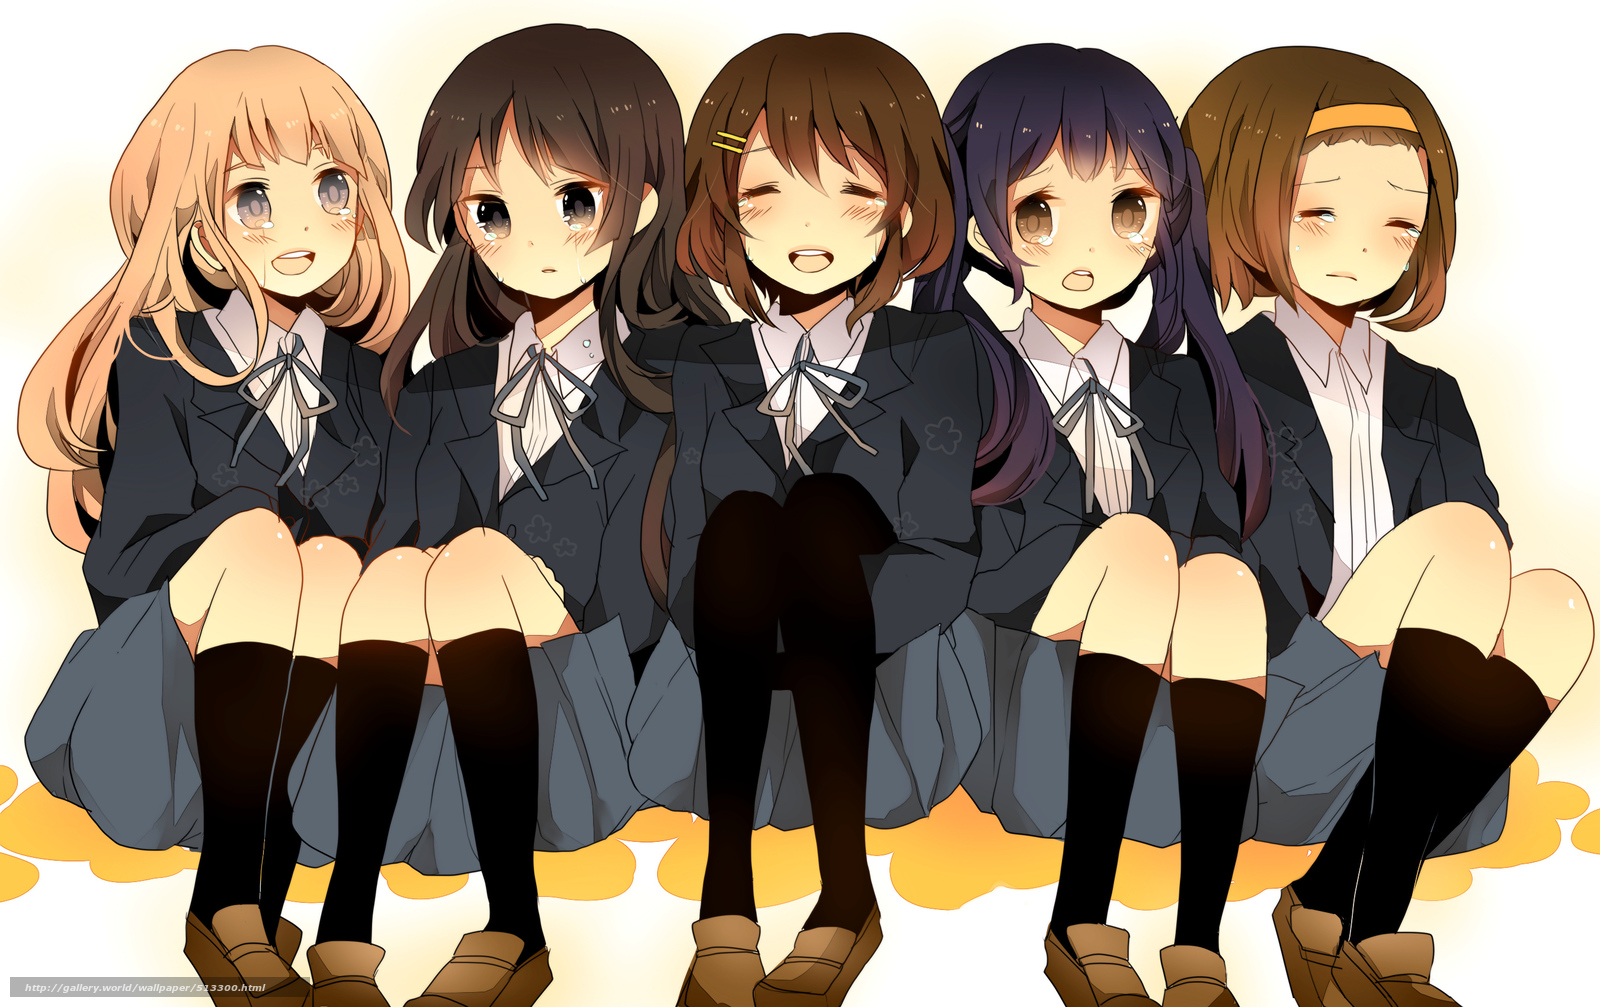 Download Wallpaper Schoolgirls Art Anime Group Free